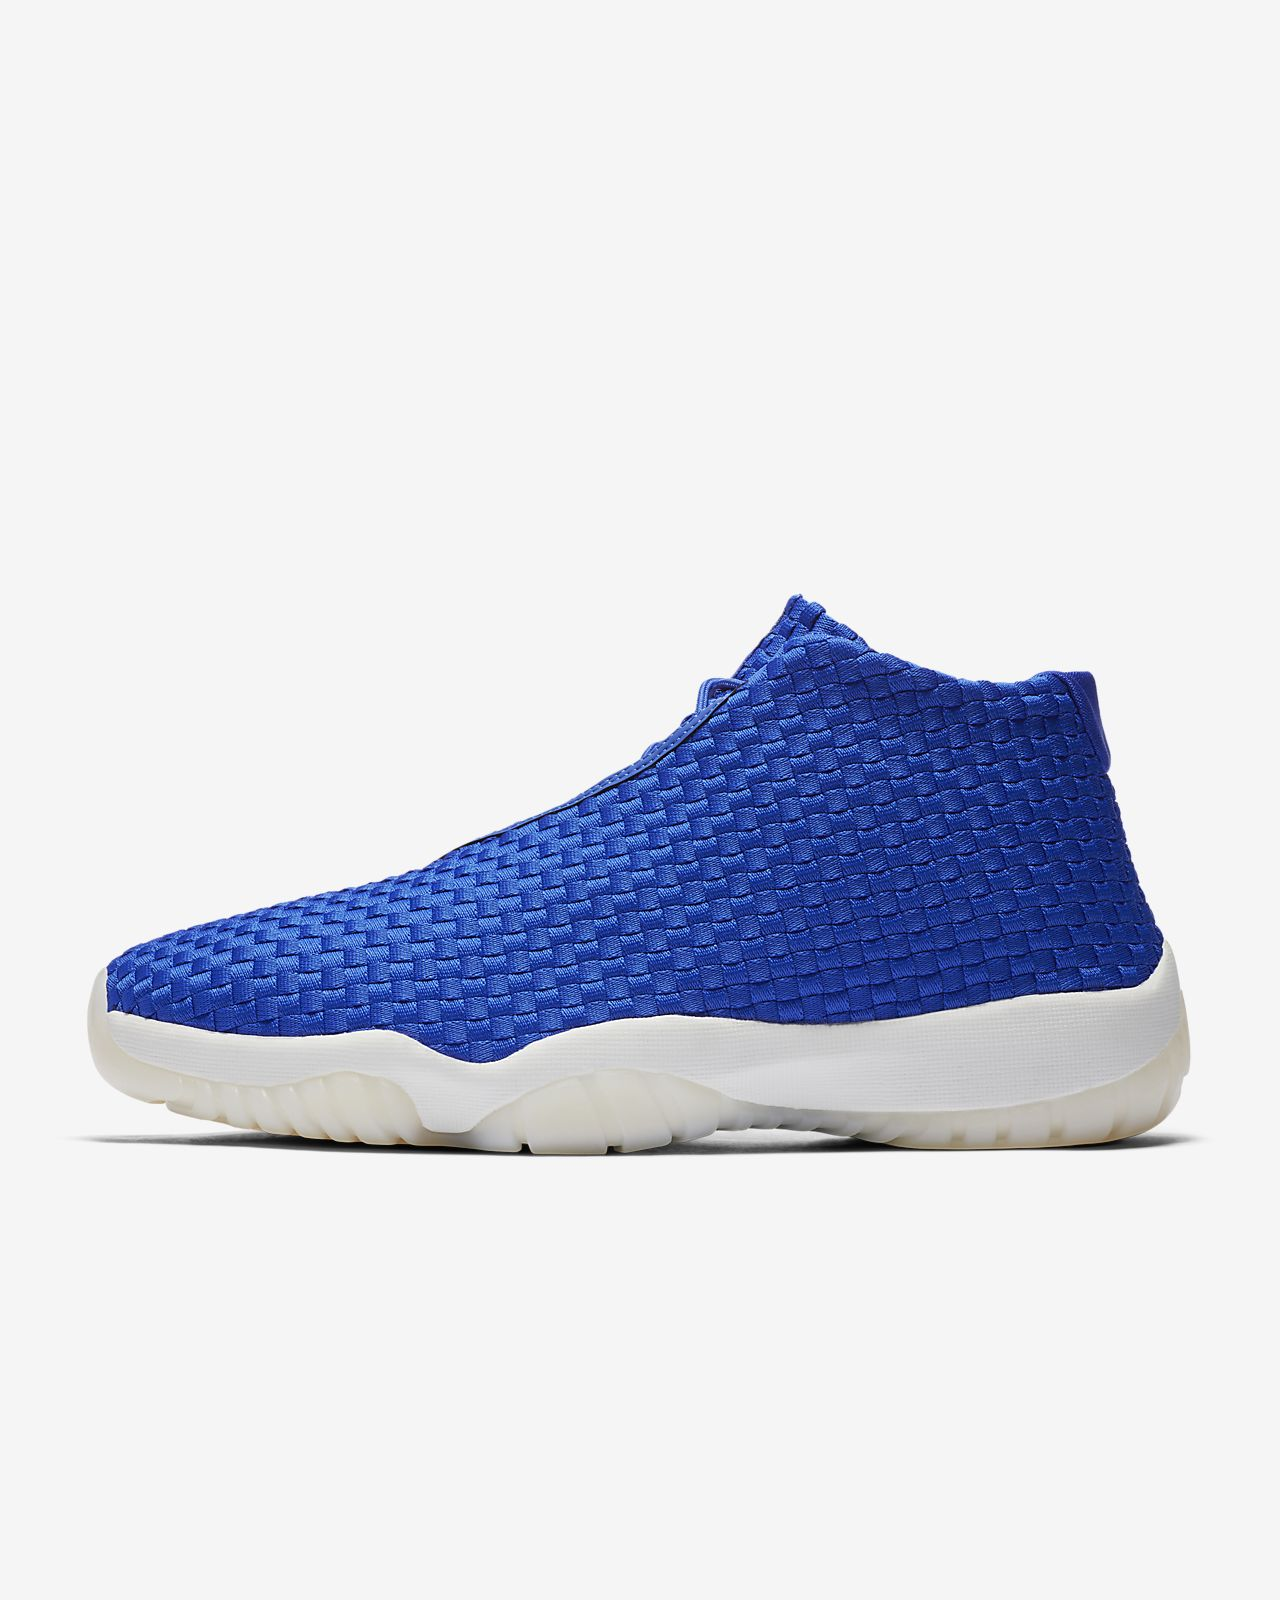 3a75d52a95187 Air Jordan Future Men s Shoe. Nike.com